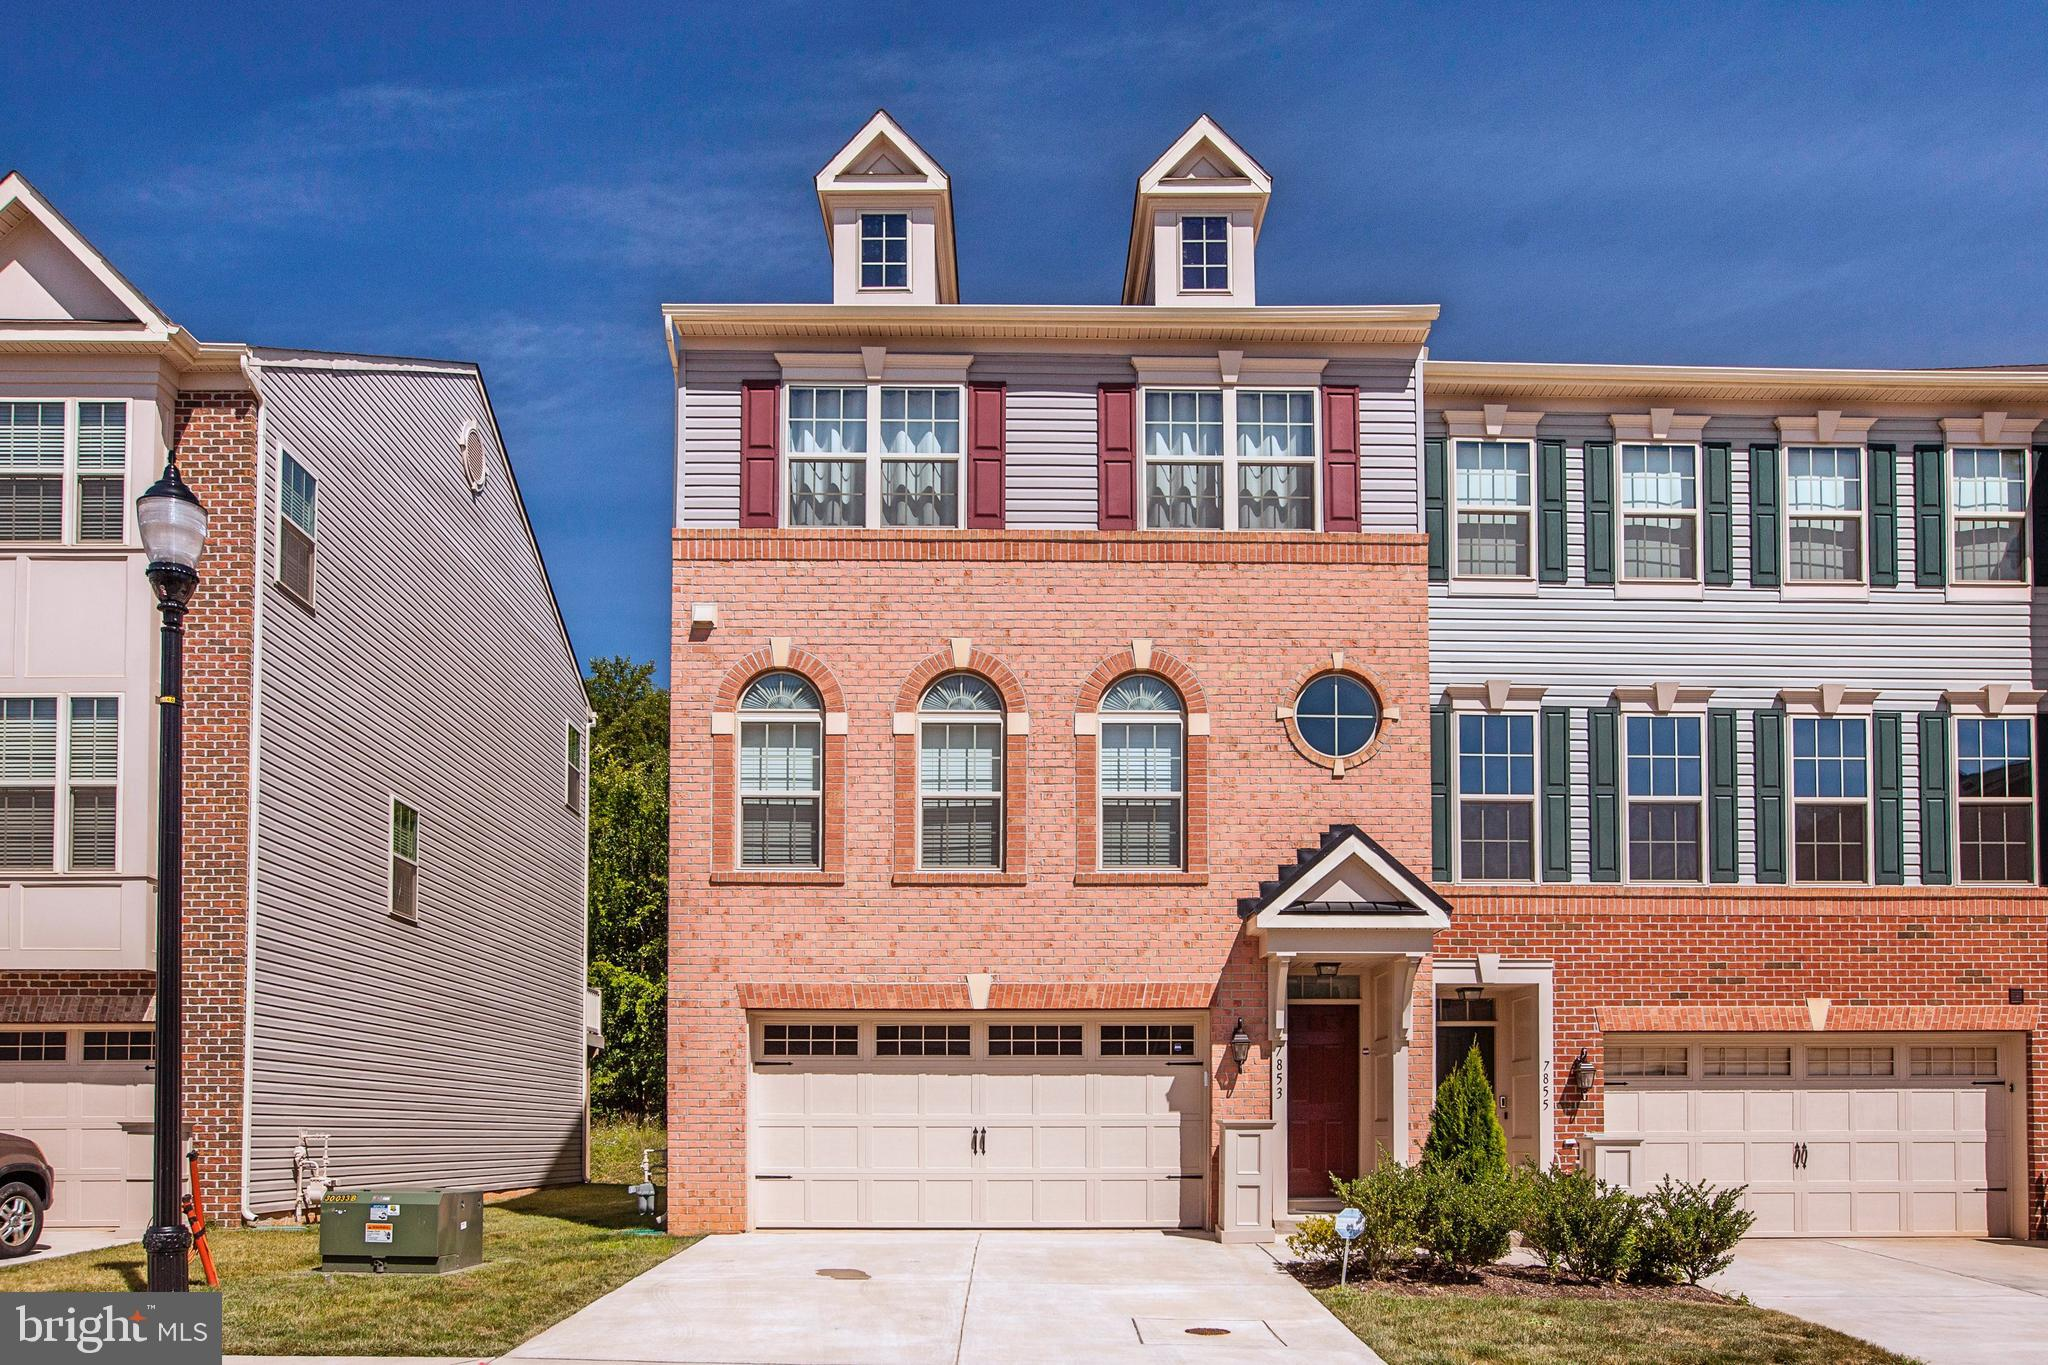 7853 RAPPAPORT DRIVE, JESSUP, MD 20794